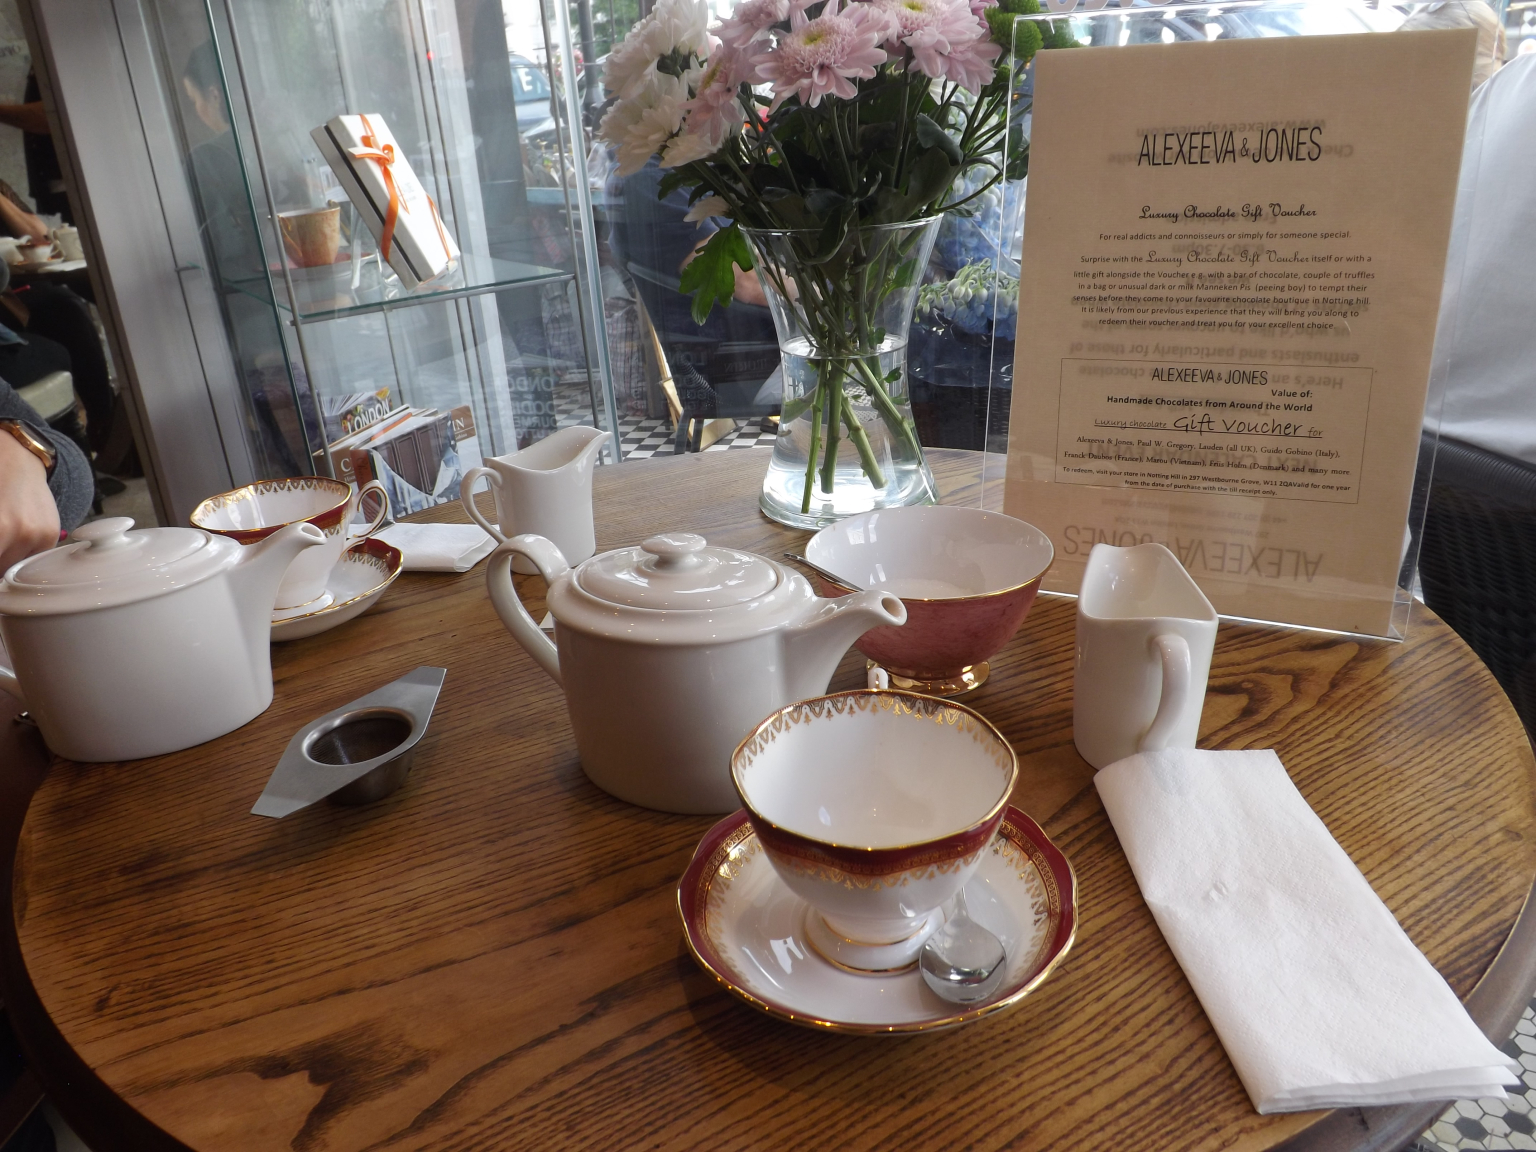 We had the chocolate afternoon tea experience which I highly recommend.